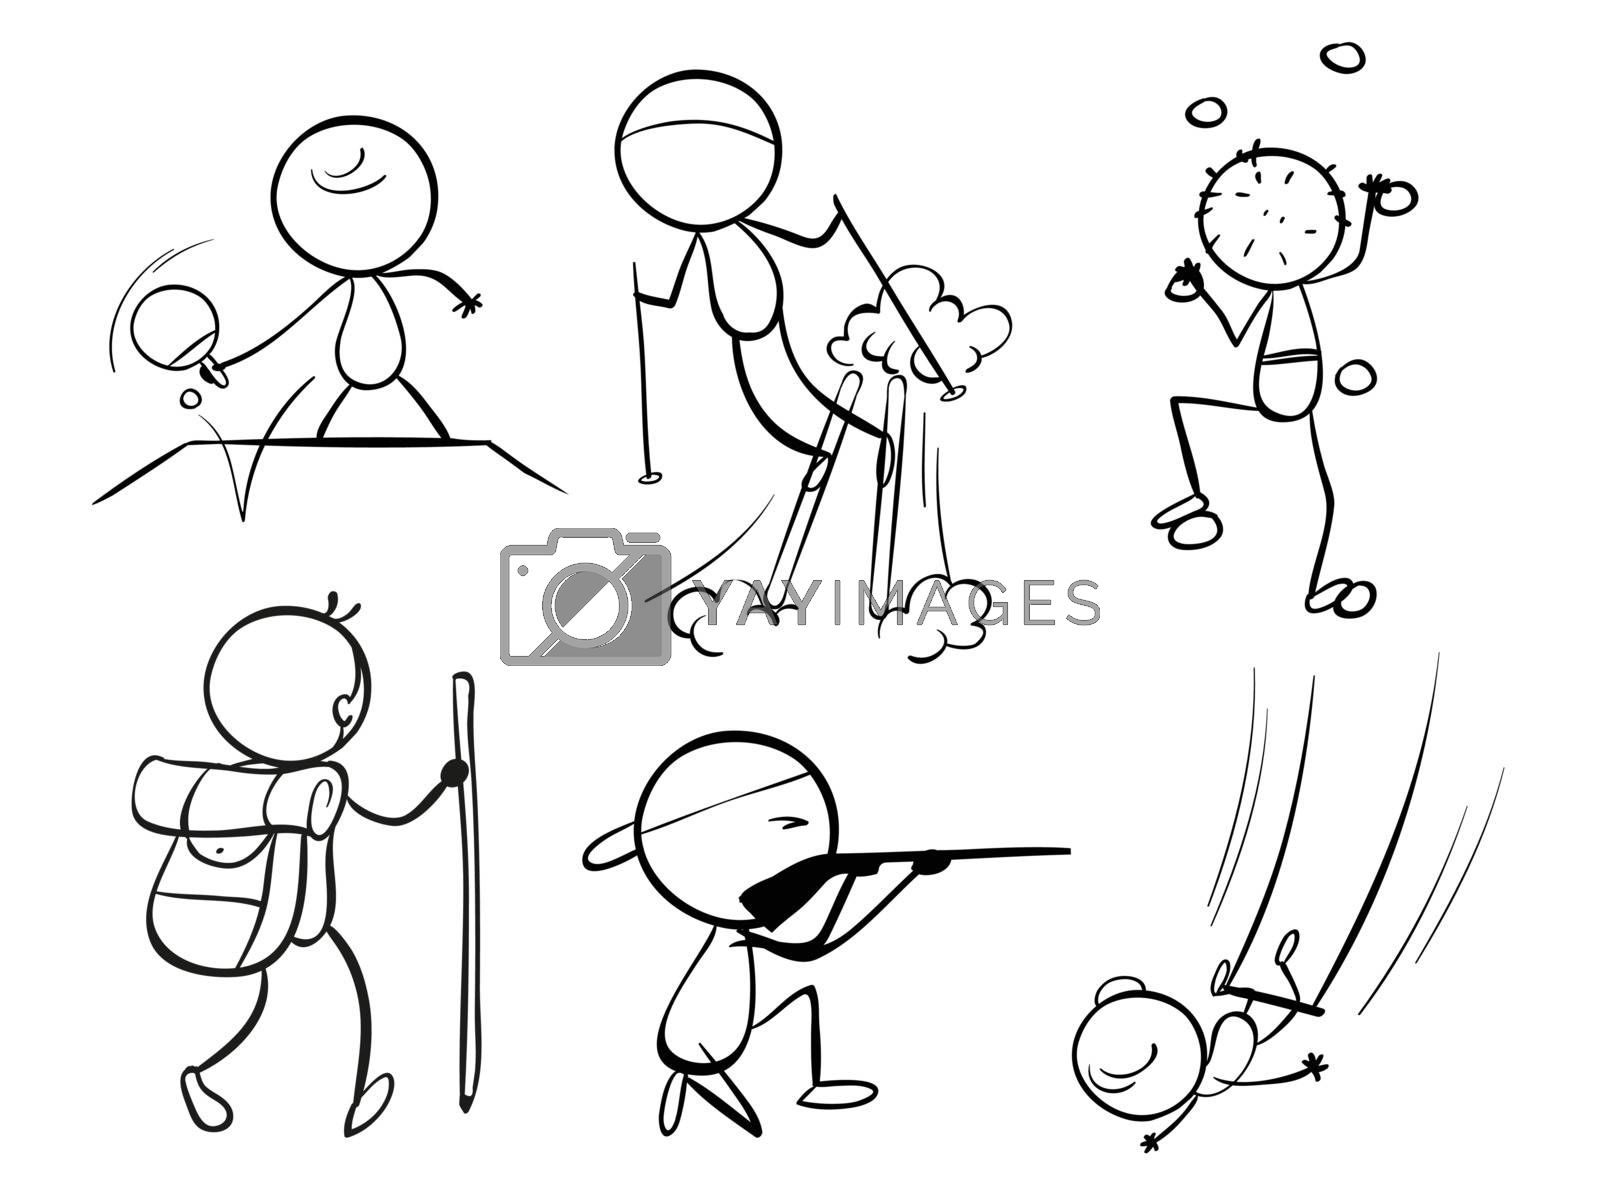 Illustration of the doodle designs of sporty people on a white background